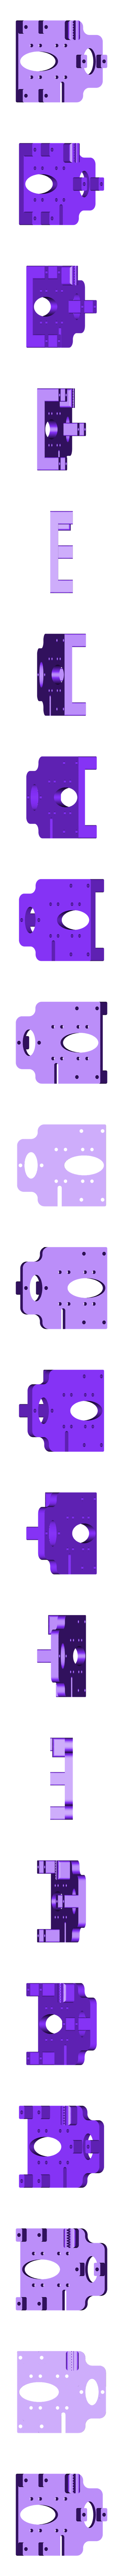 backplate for graphite bushings.stl Download STL file hotend backplate for Anet A8 • 3D print design, jasso